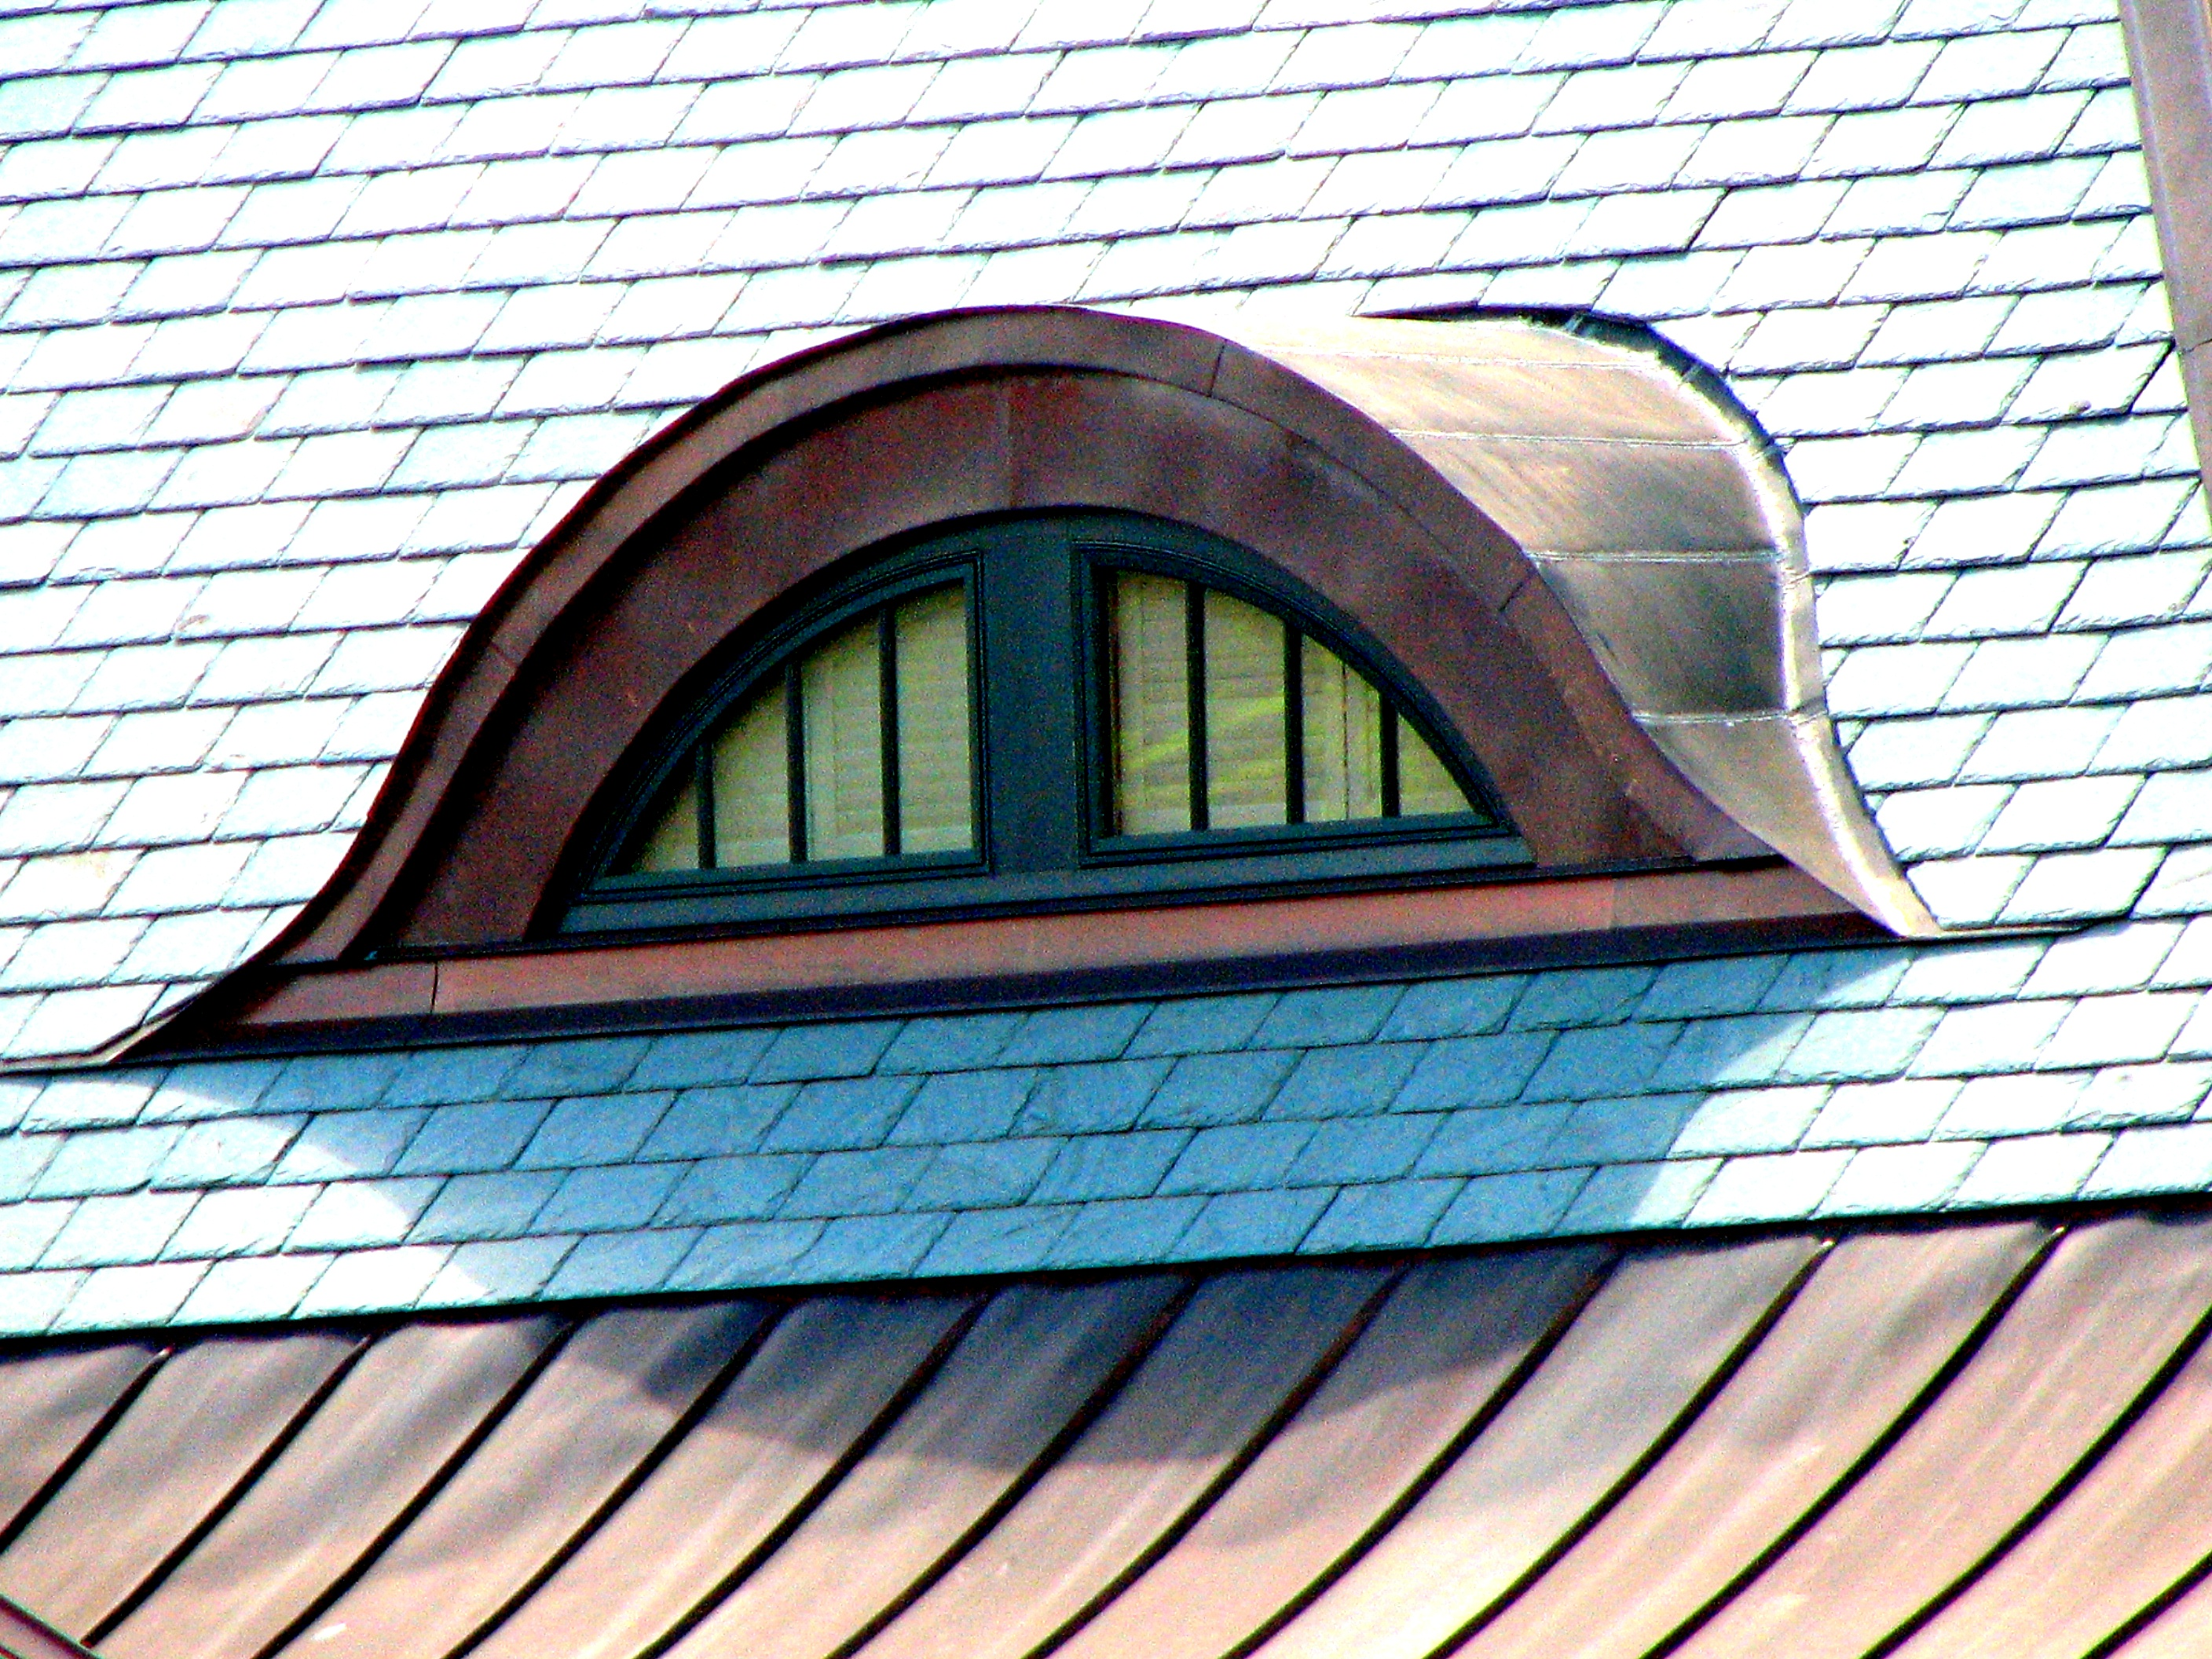 Eyebrow Dormer Flickr Photo Sharing